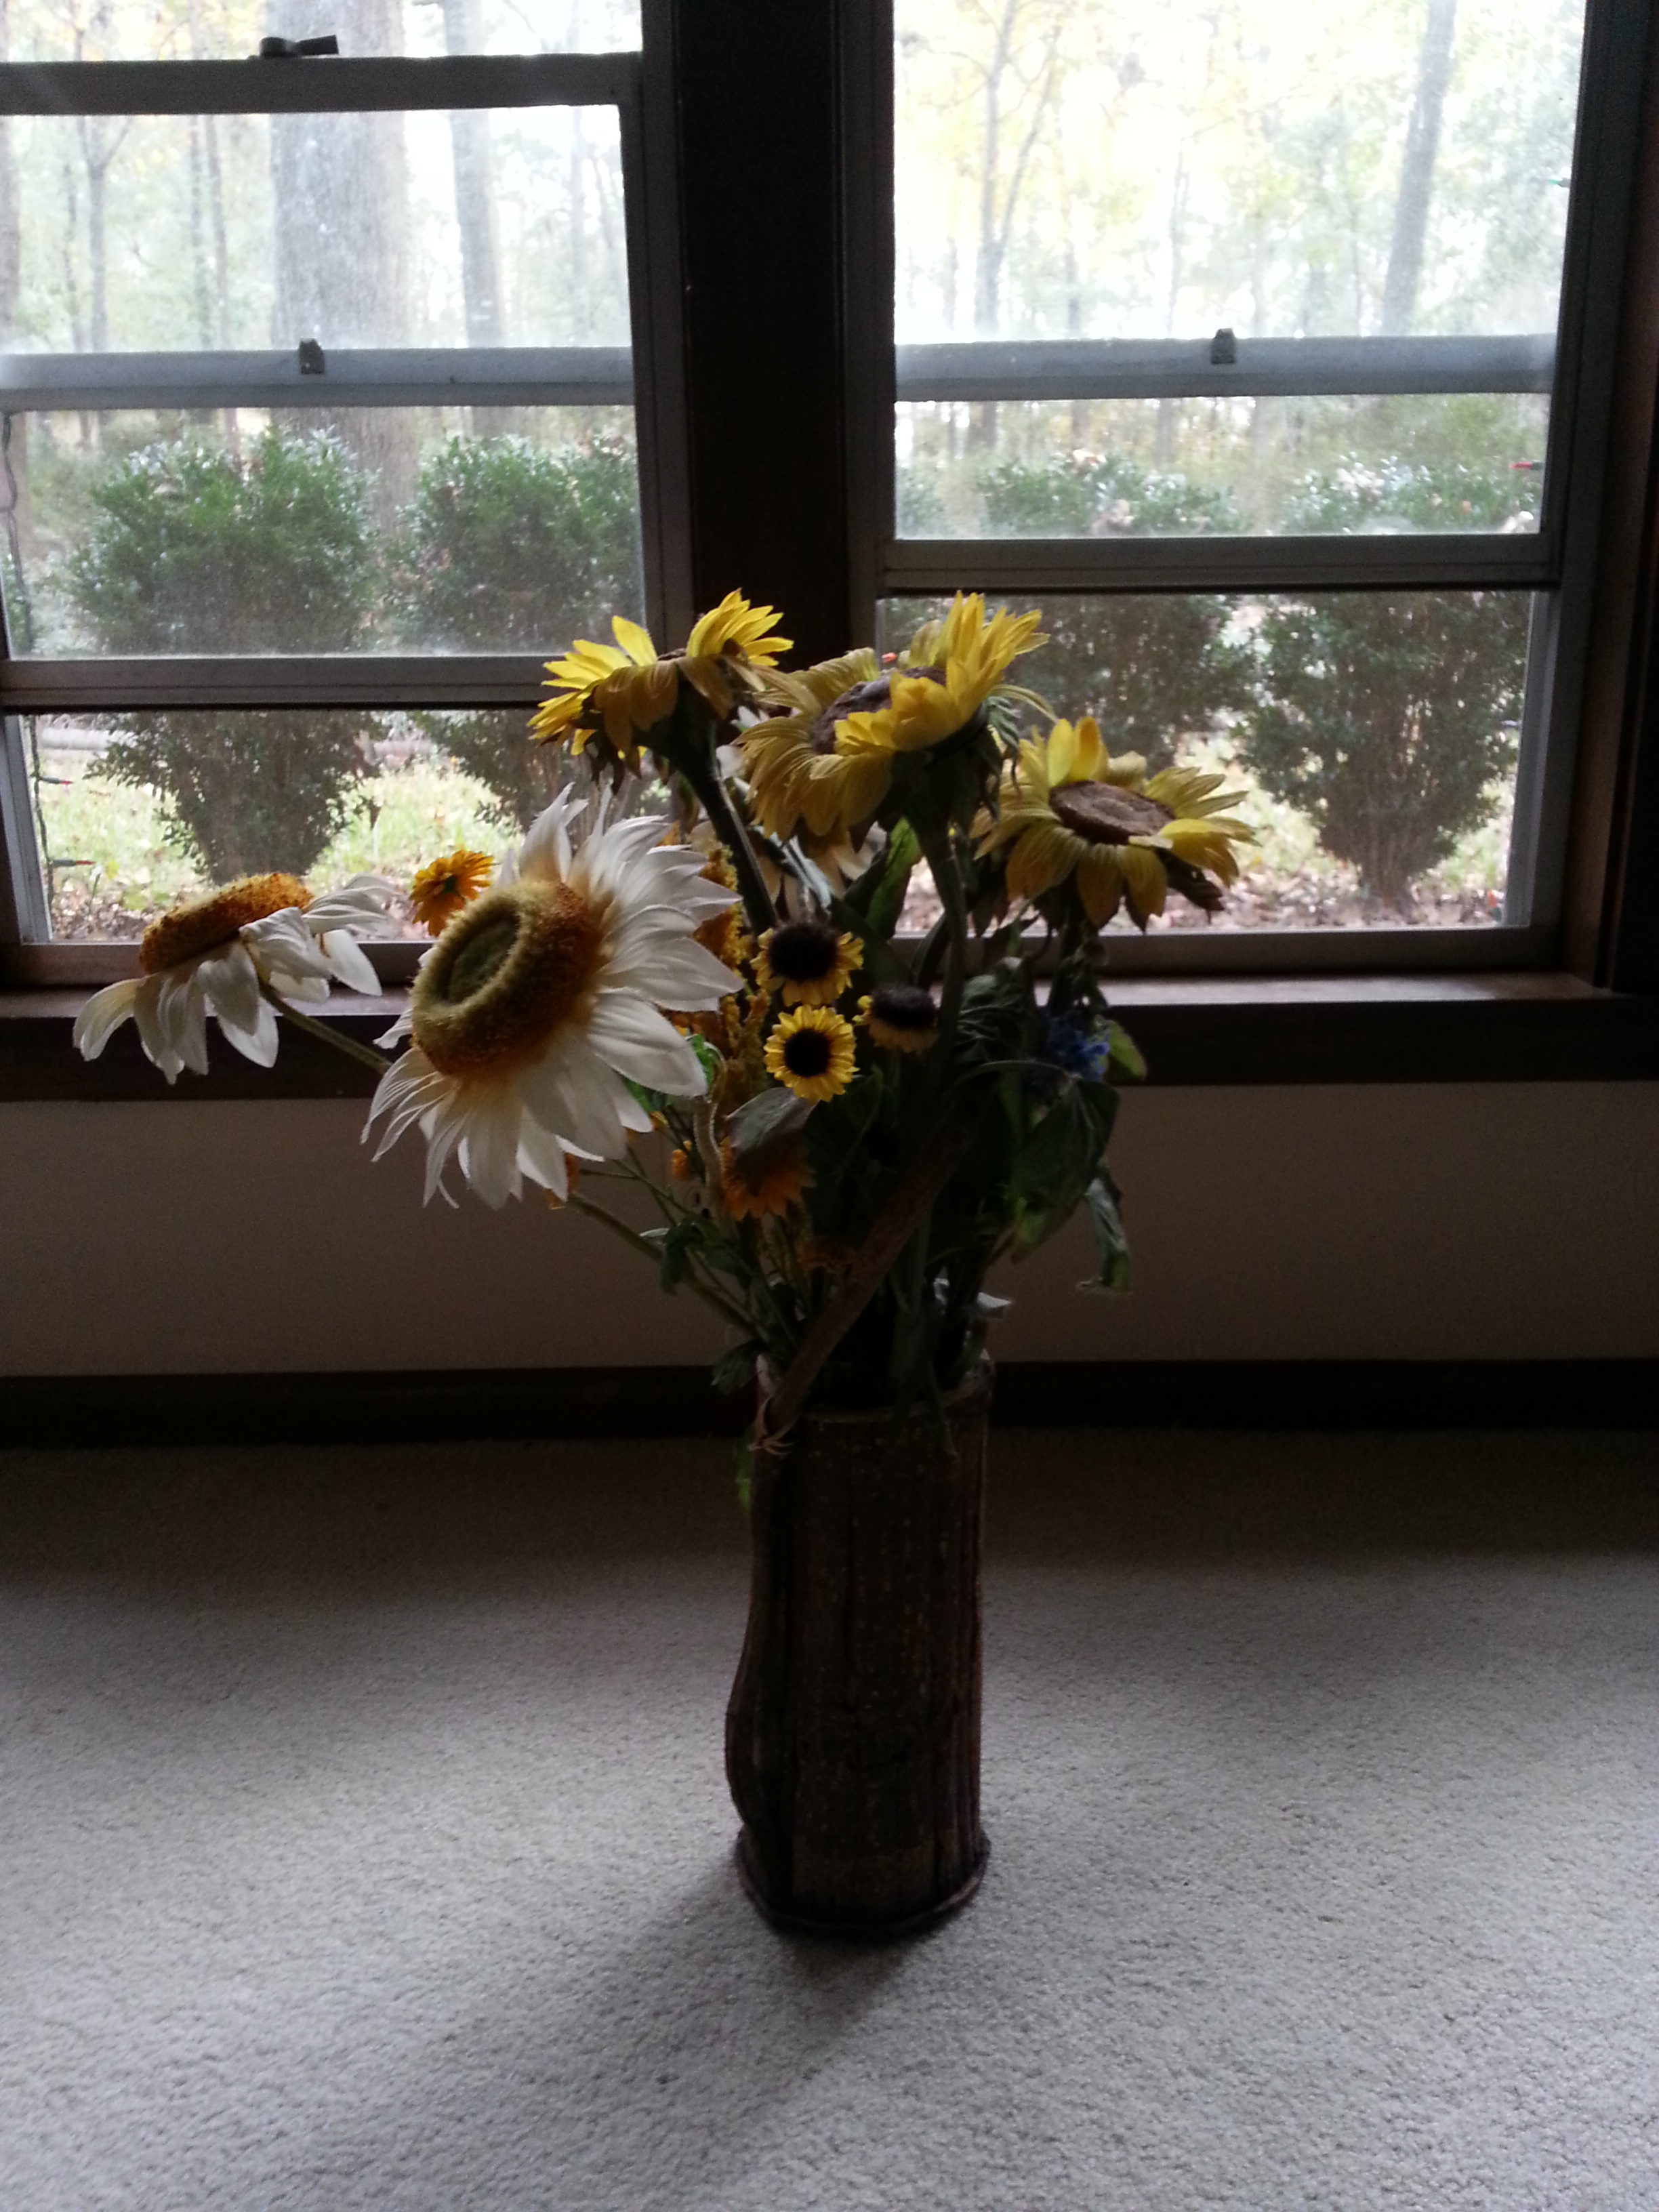 My 22-year-old son happily proclaimed this flower arrangement an adequate substitute for a Christmas tree.